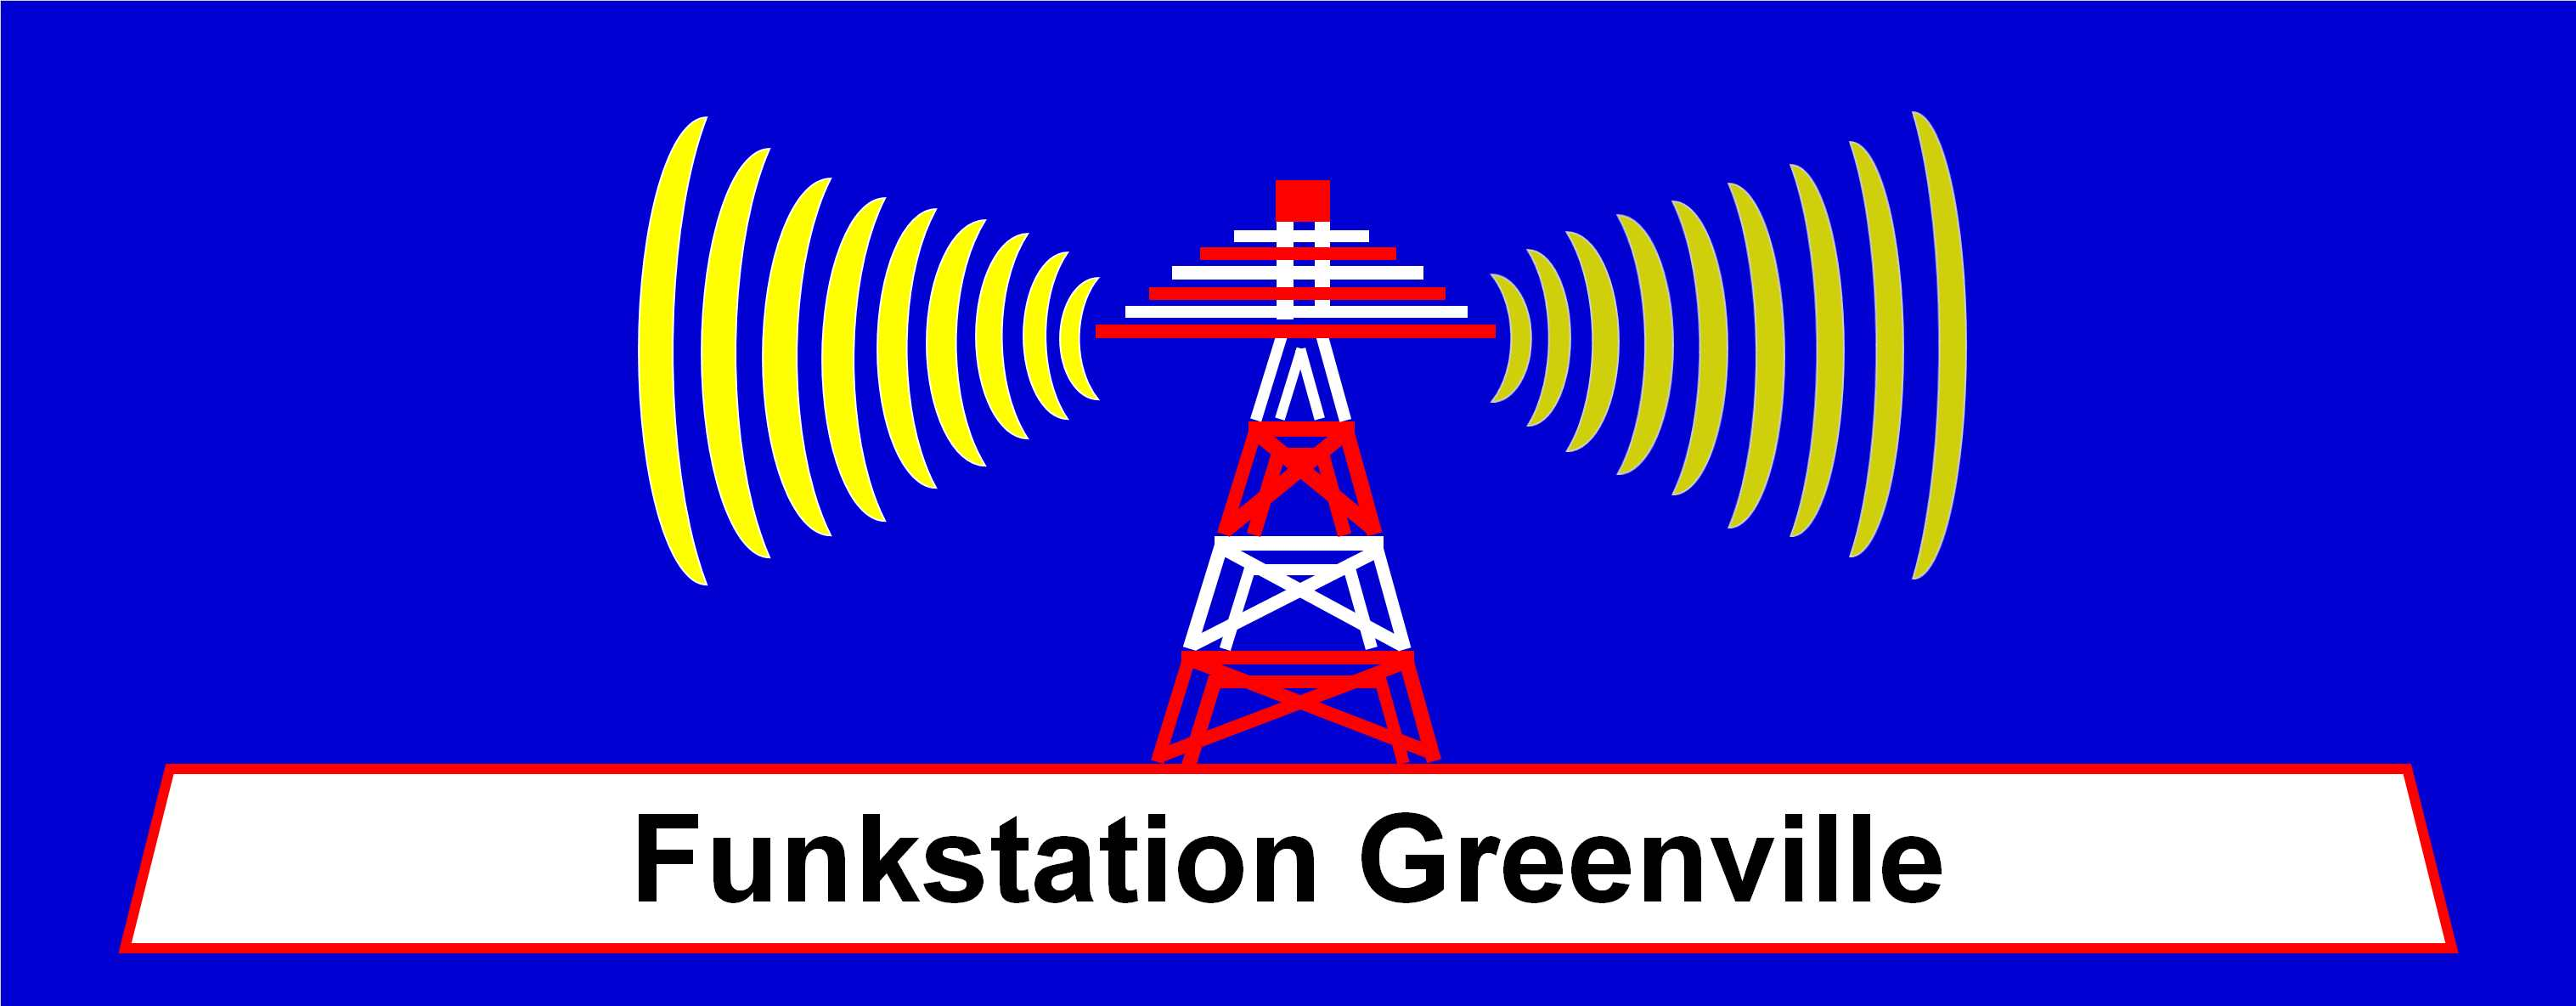 Funkstation Greenville